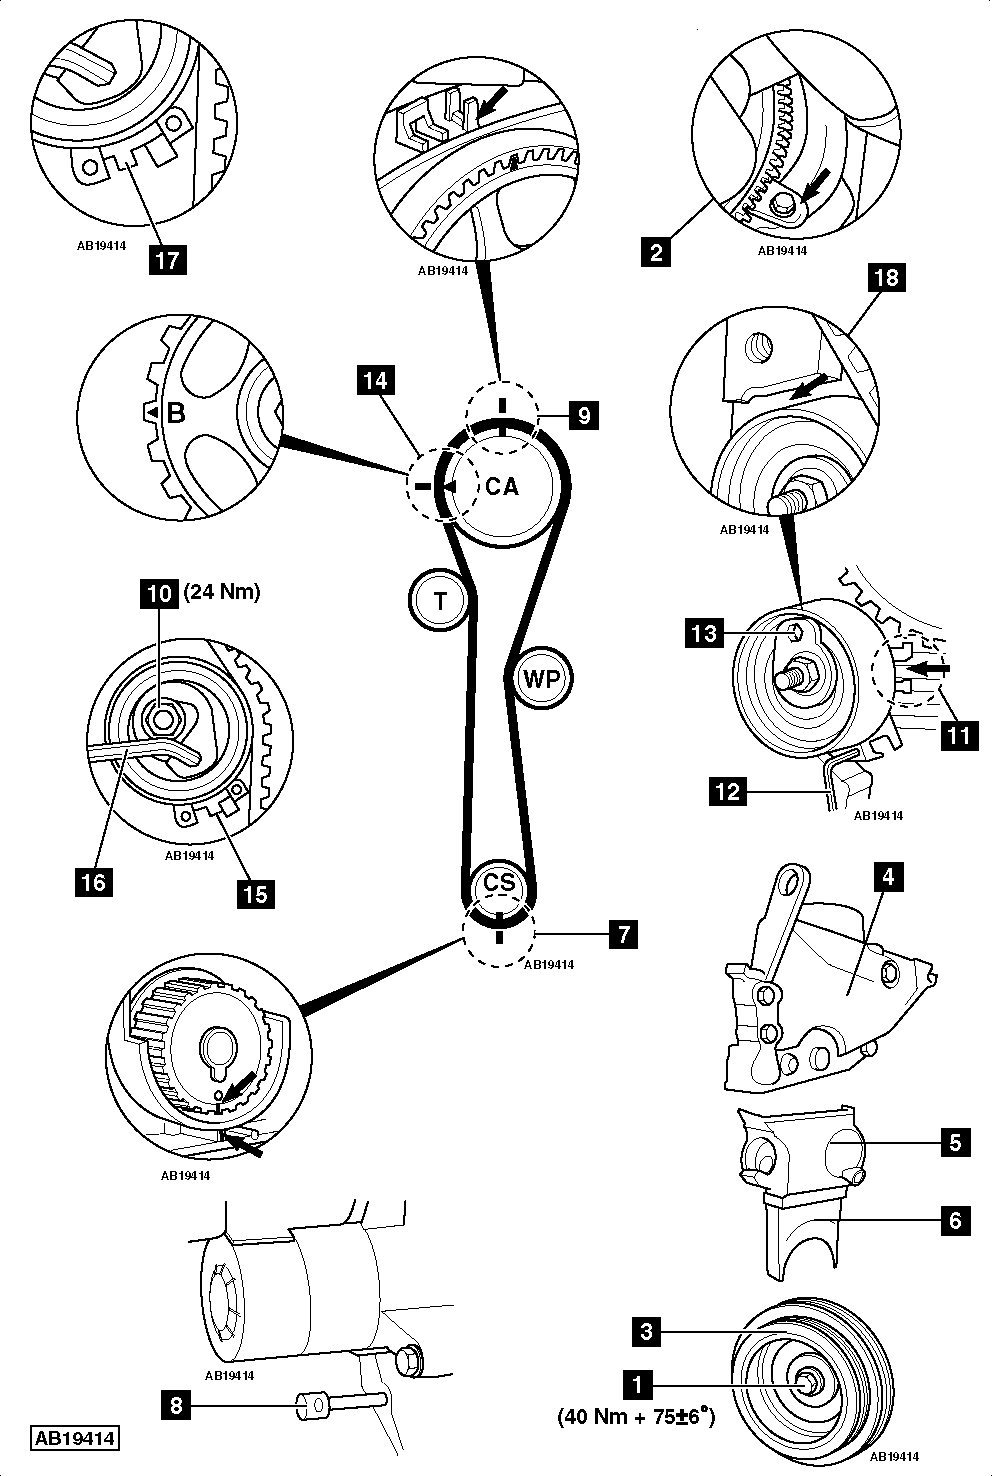 scion tc timing chain diagram nissan versa timing chain diagram